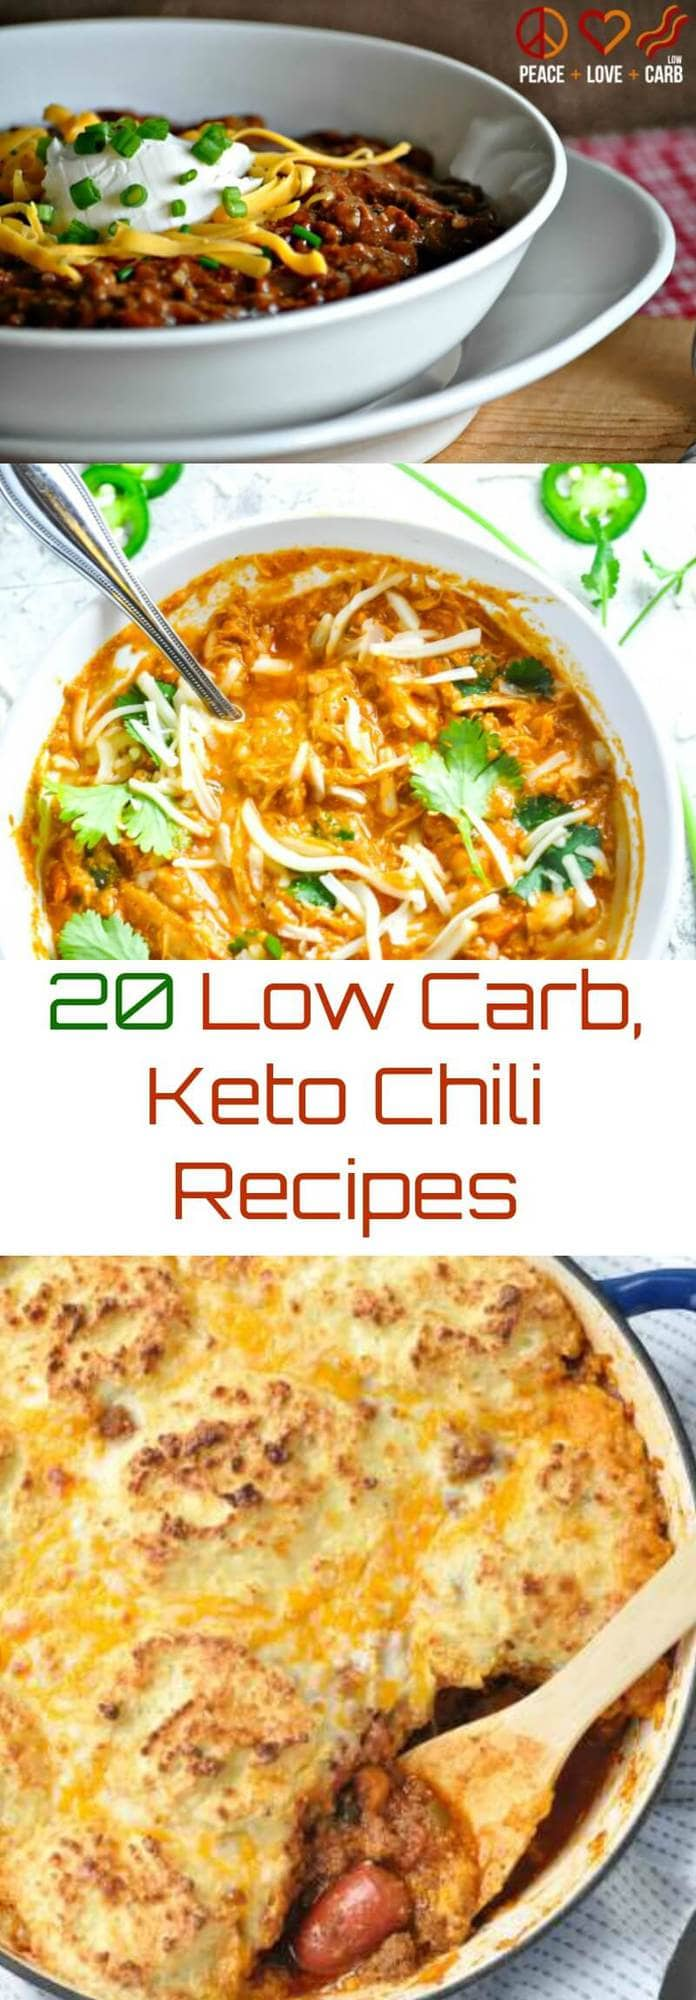 What Foods Are Low Car On Chili S Menu